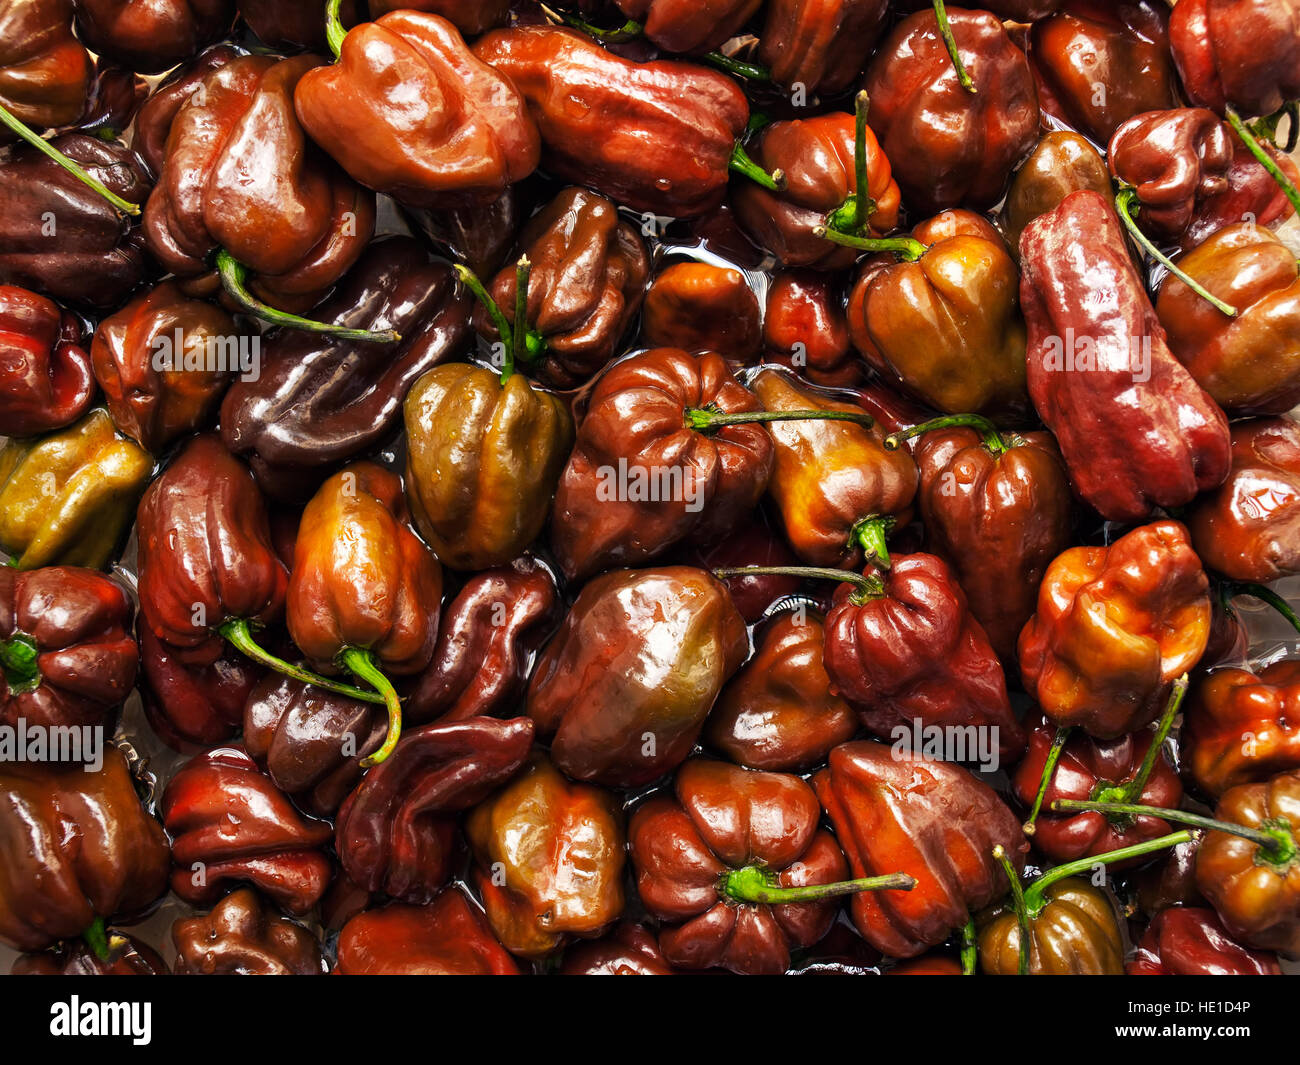 Lot of Habanero Chocolate peppers in the water. Stock Photo